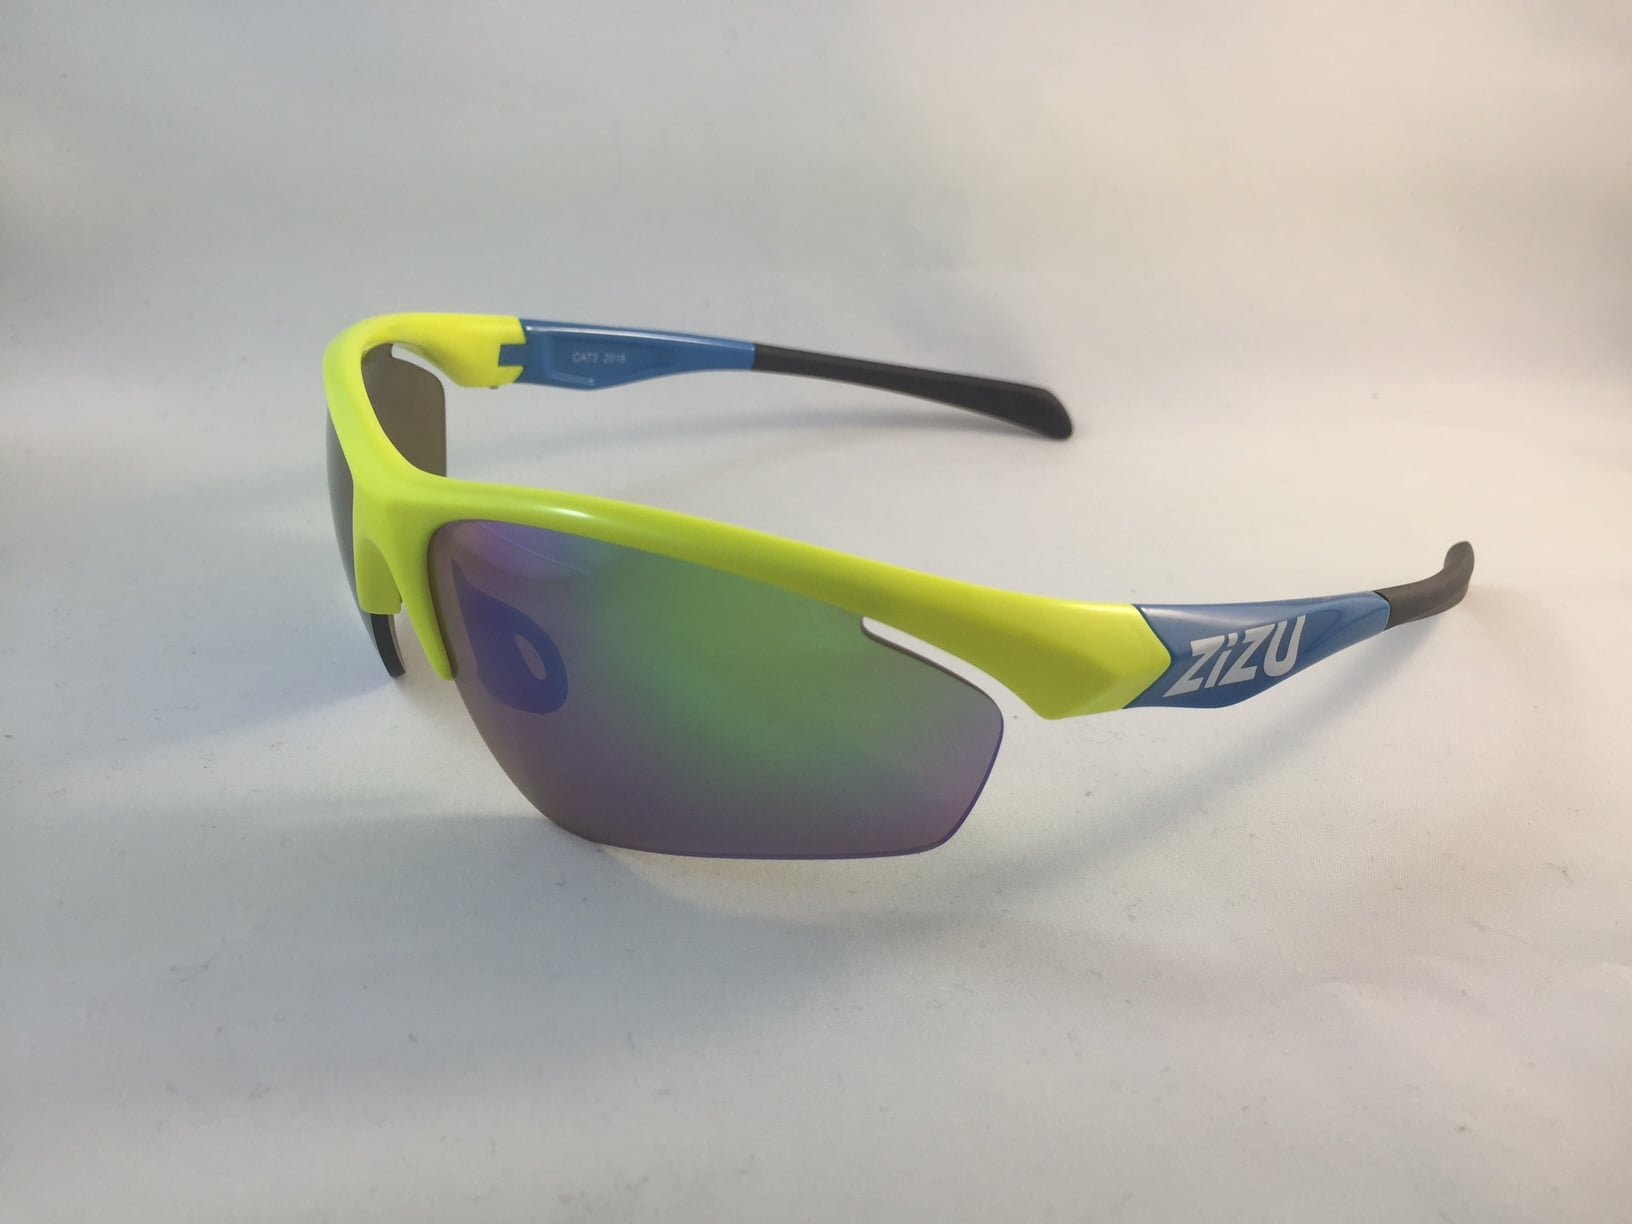 SCX1 Yellow Blue-Blue  Revo Category 3 Lens    $89 plus tax   Frame width 135mm